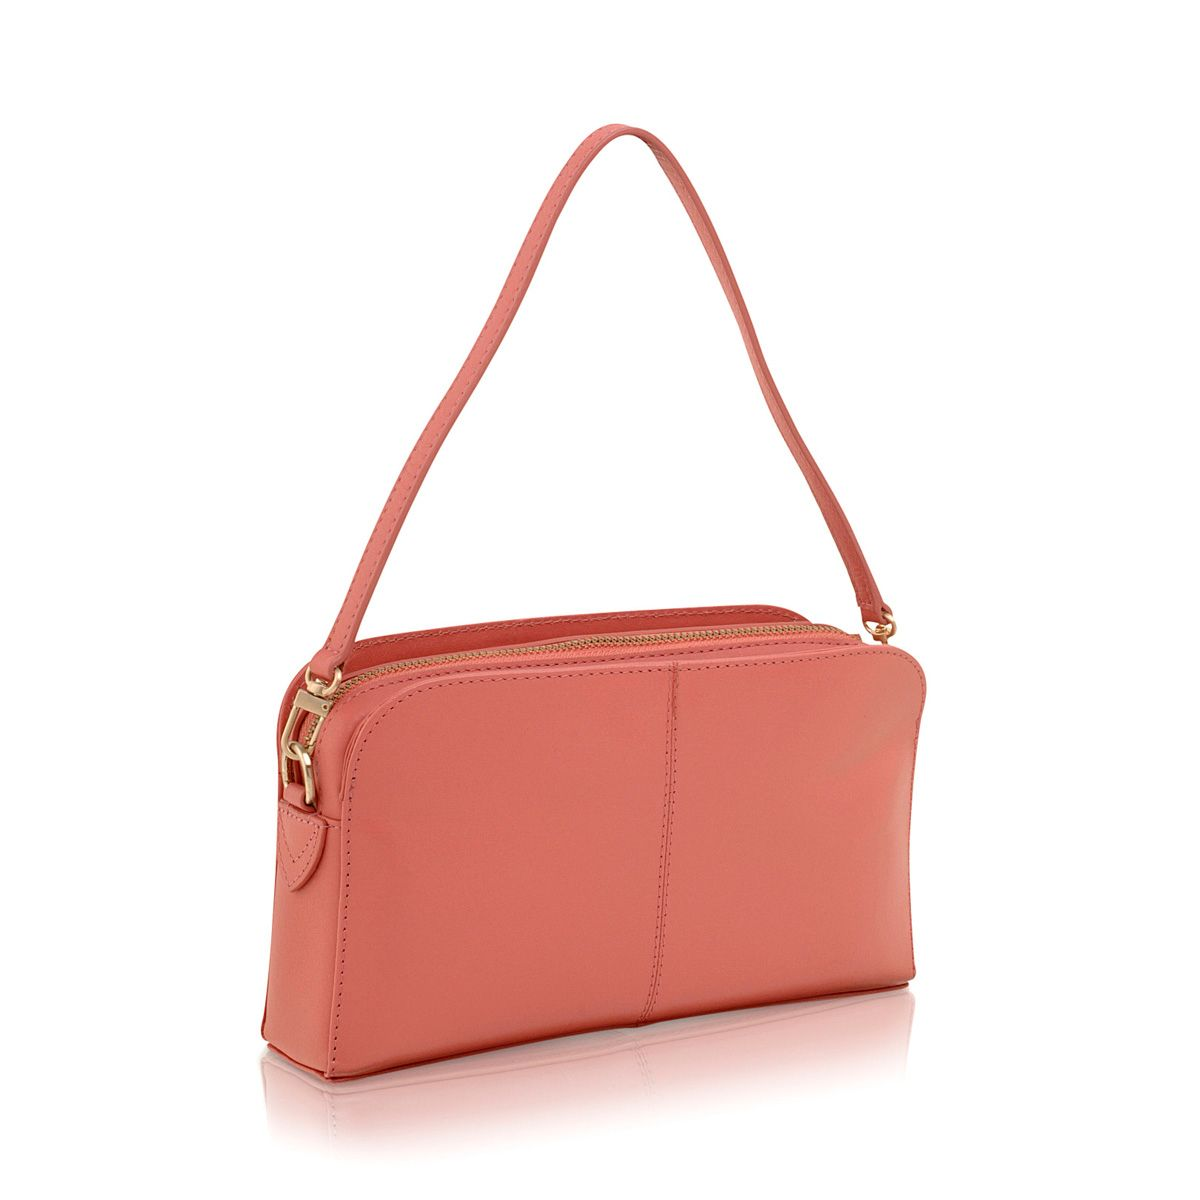 Aldgate coral mini leather shoulder bag